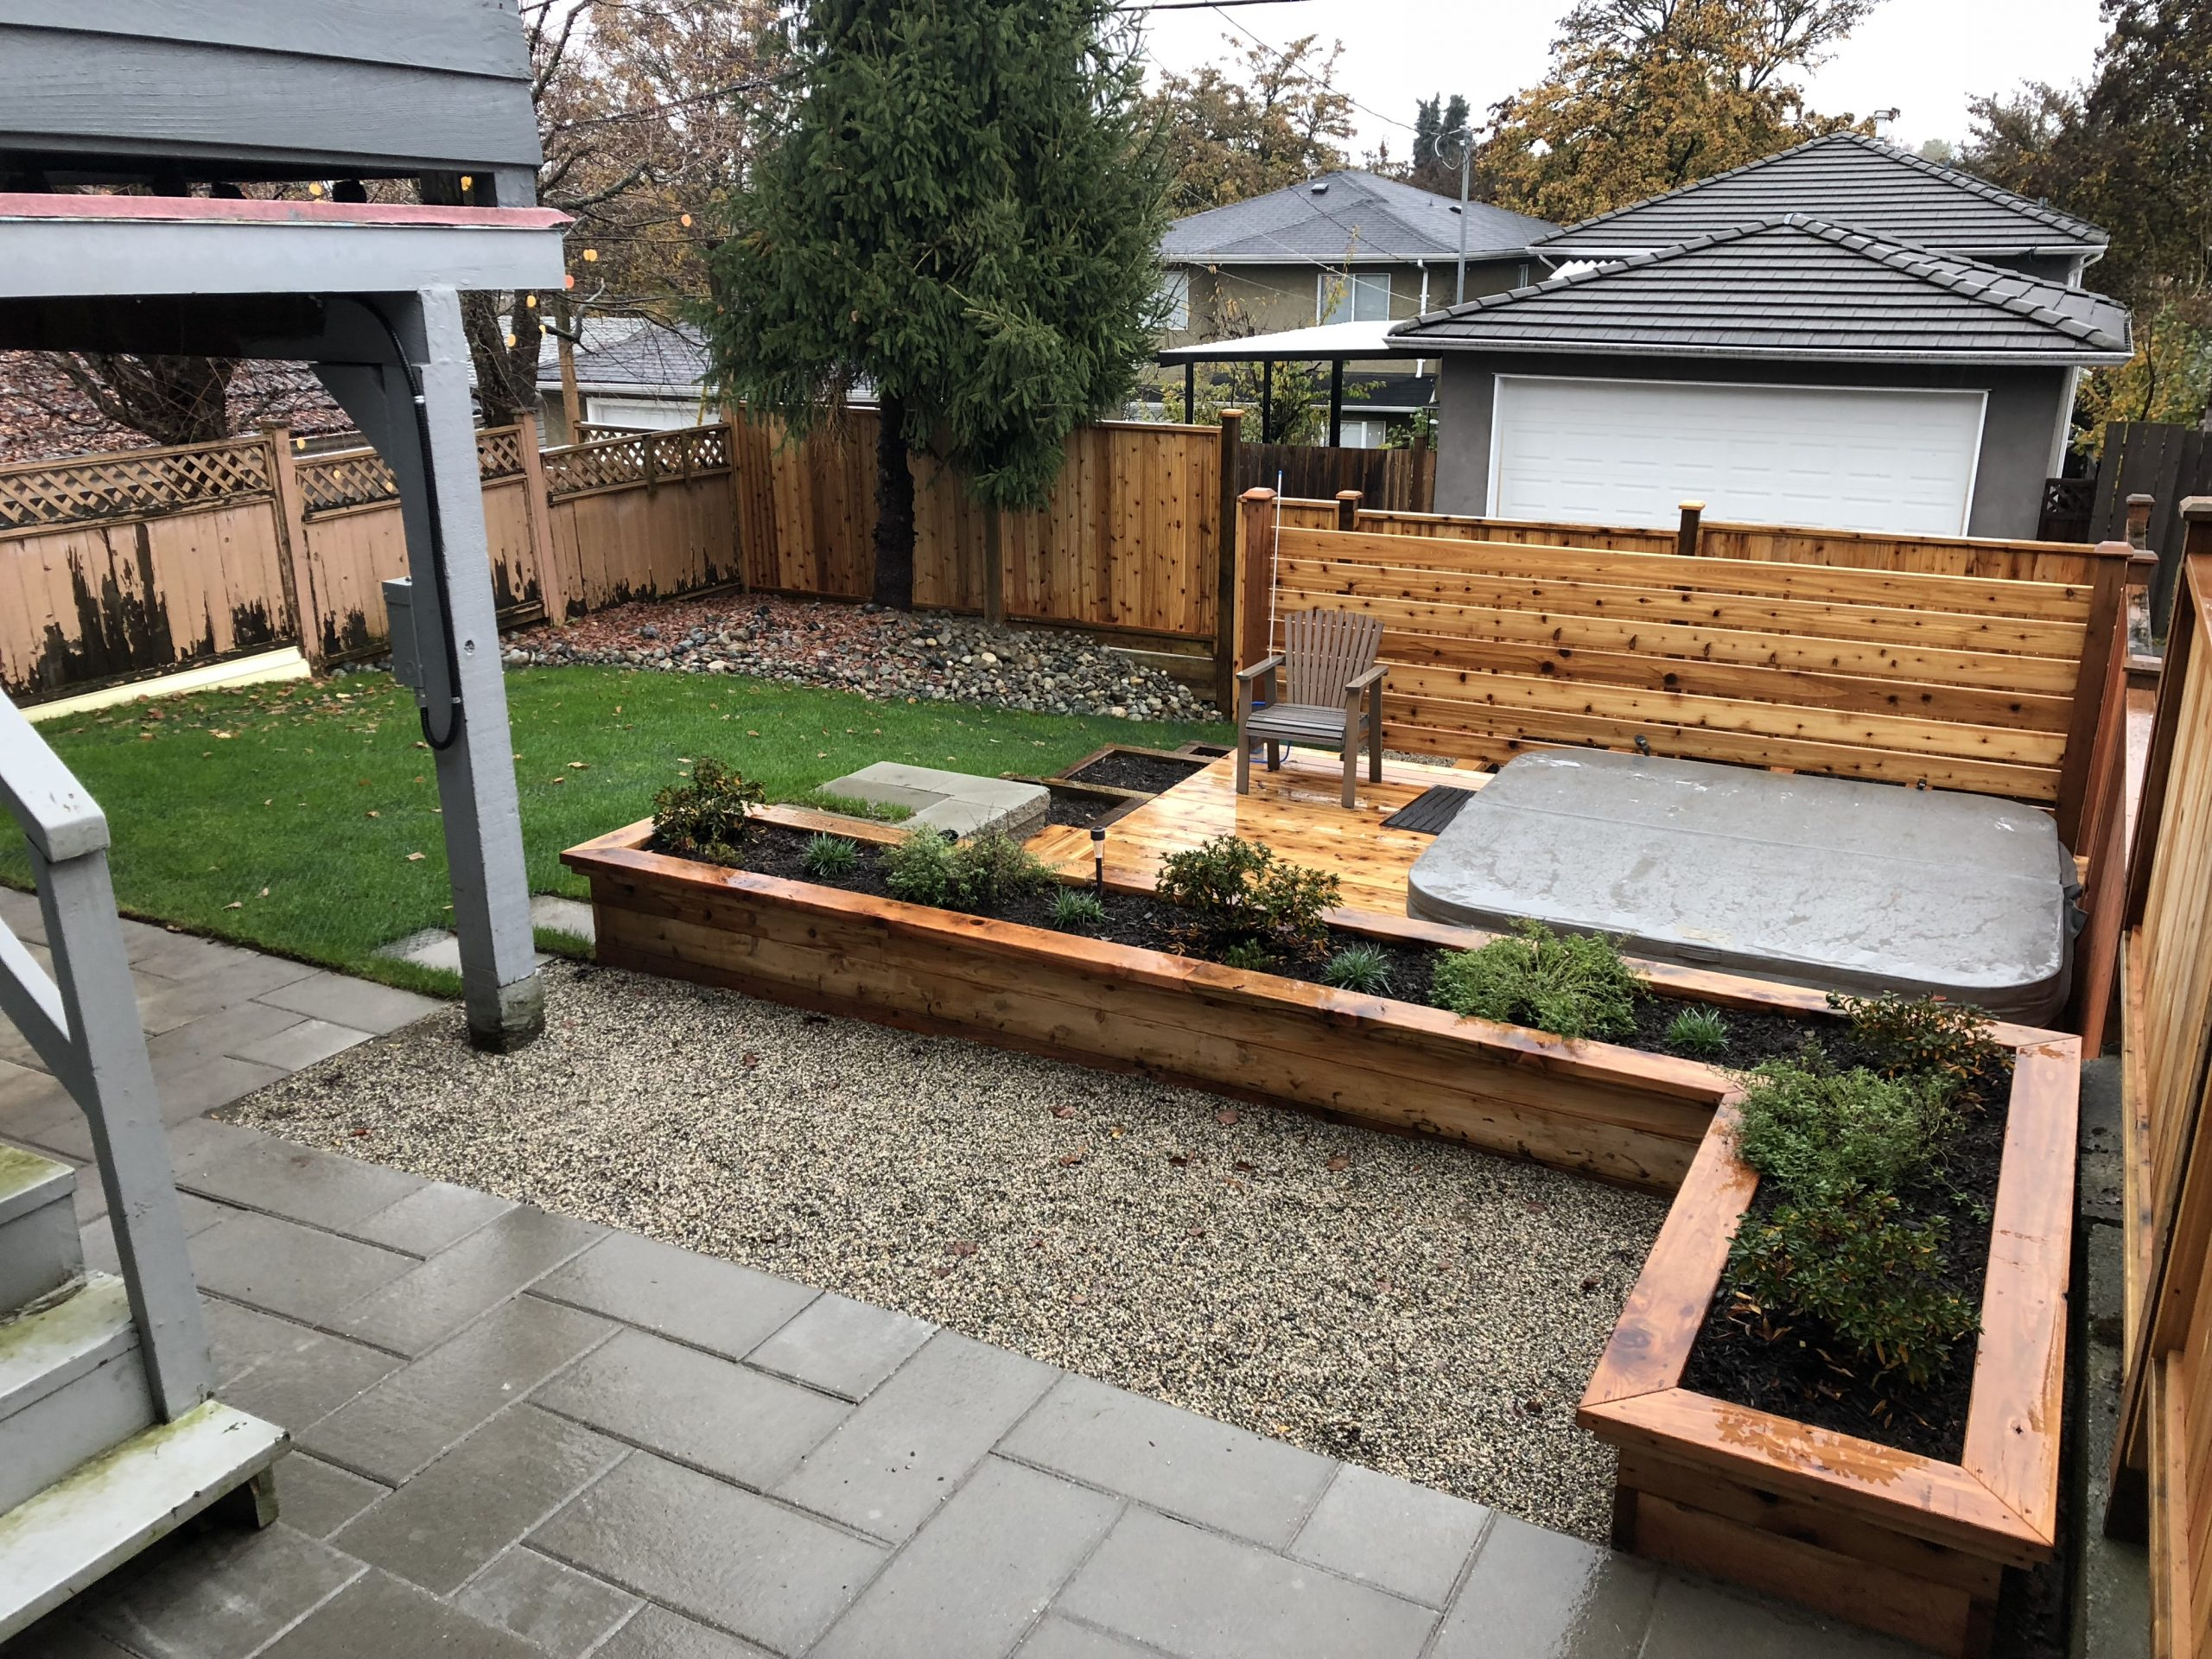 Custom cedar deck with sunken hot tub landscape construction vancouver bc garden renovation